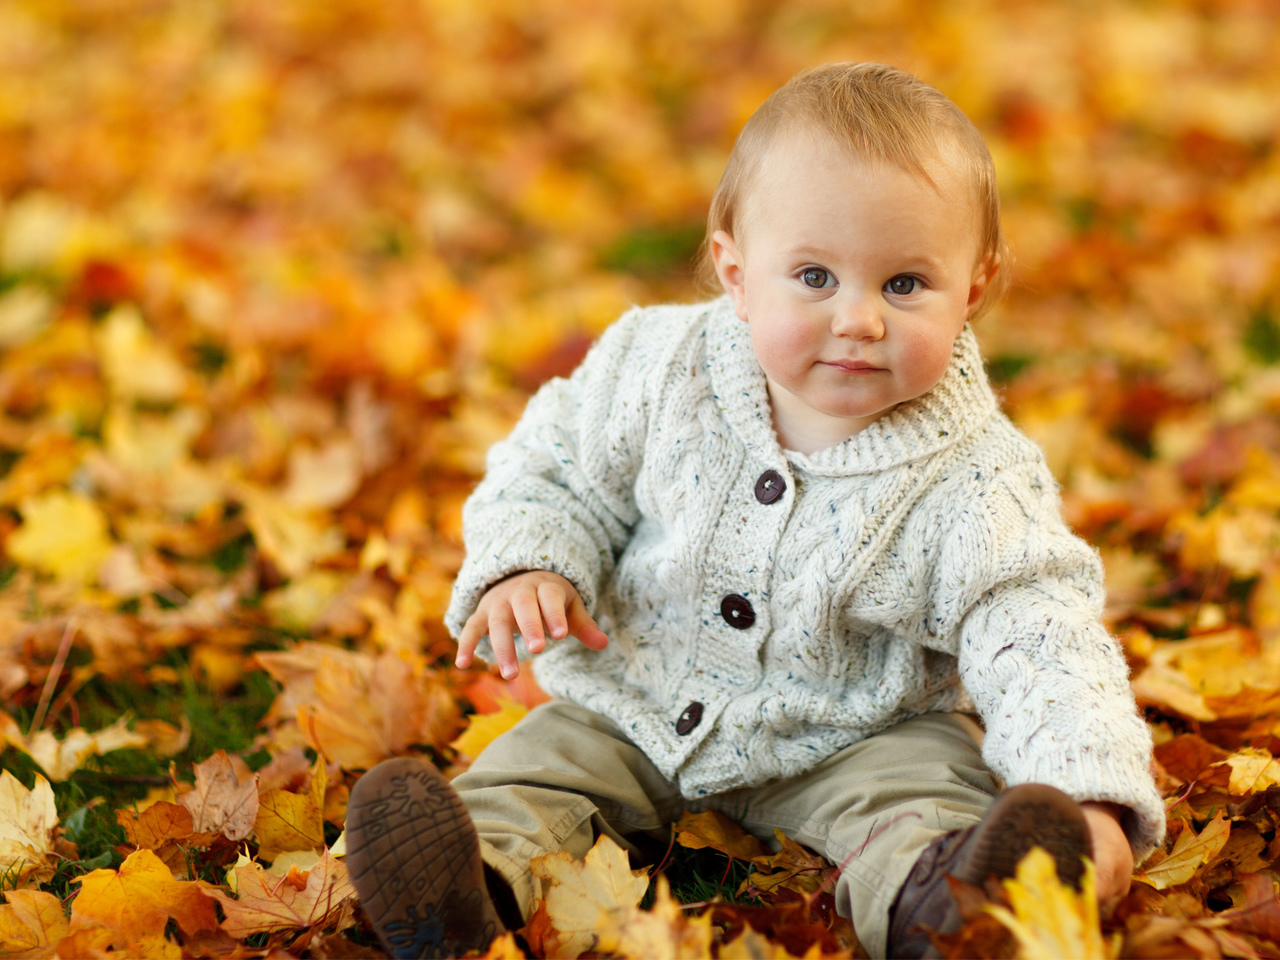 Cute Baby Boy Autumn Leaves (1280x960)